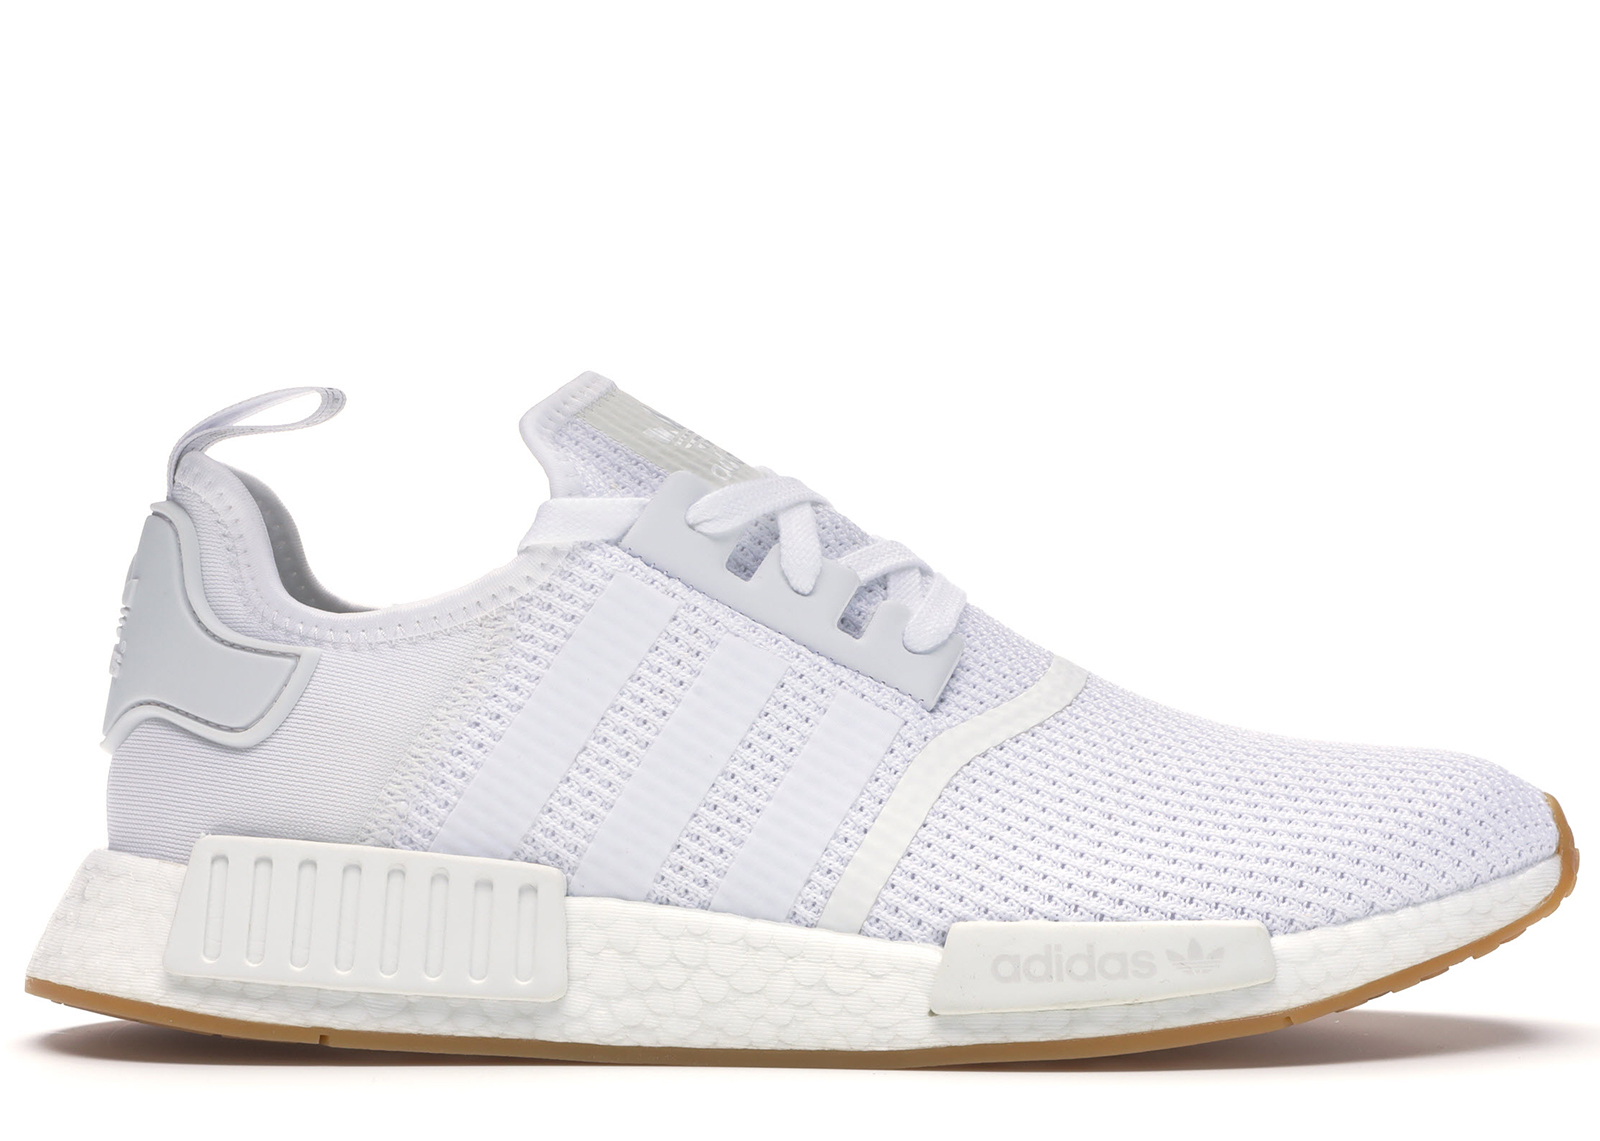 Acheter adidas NMD Chaussures et sneakers neuves